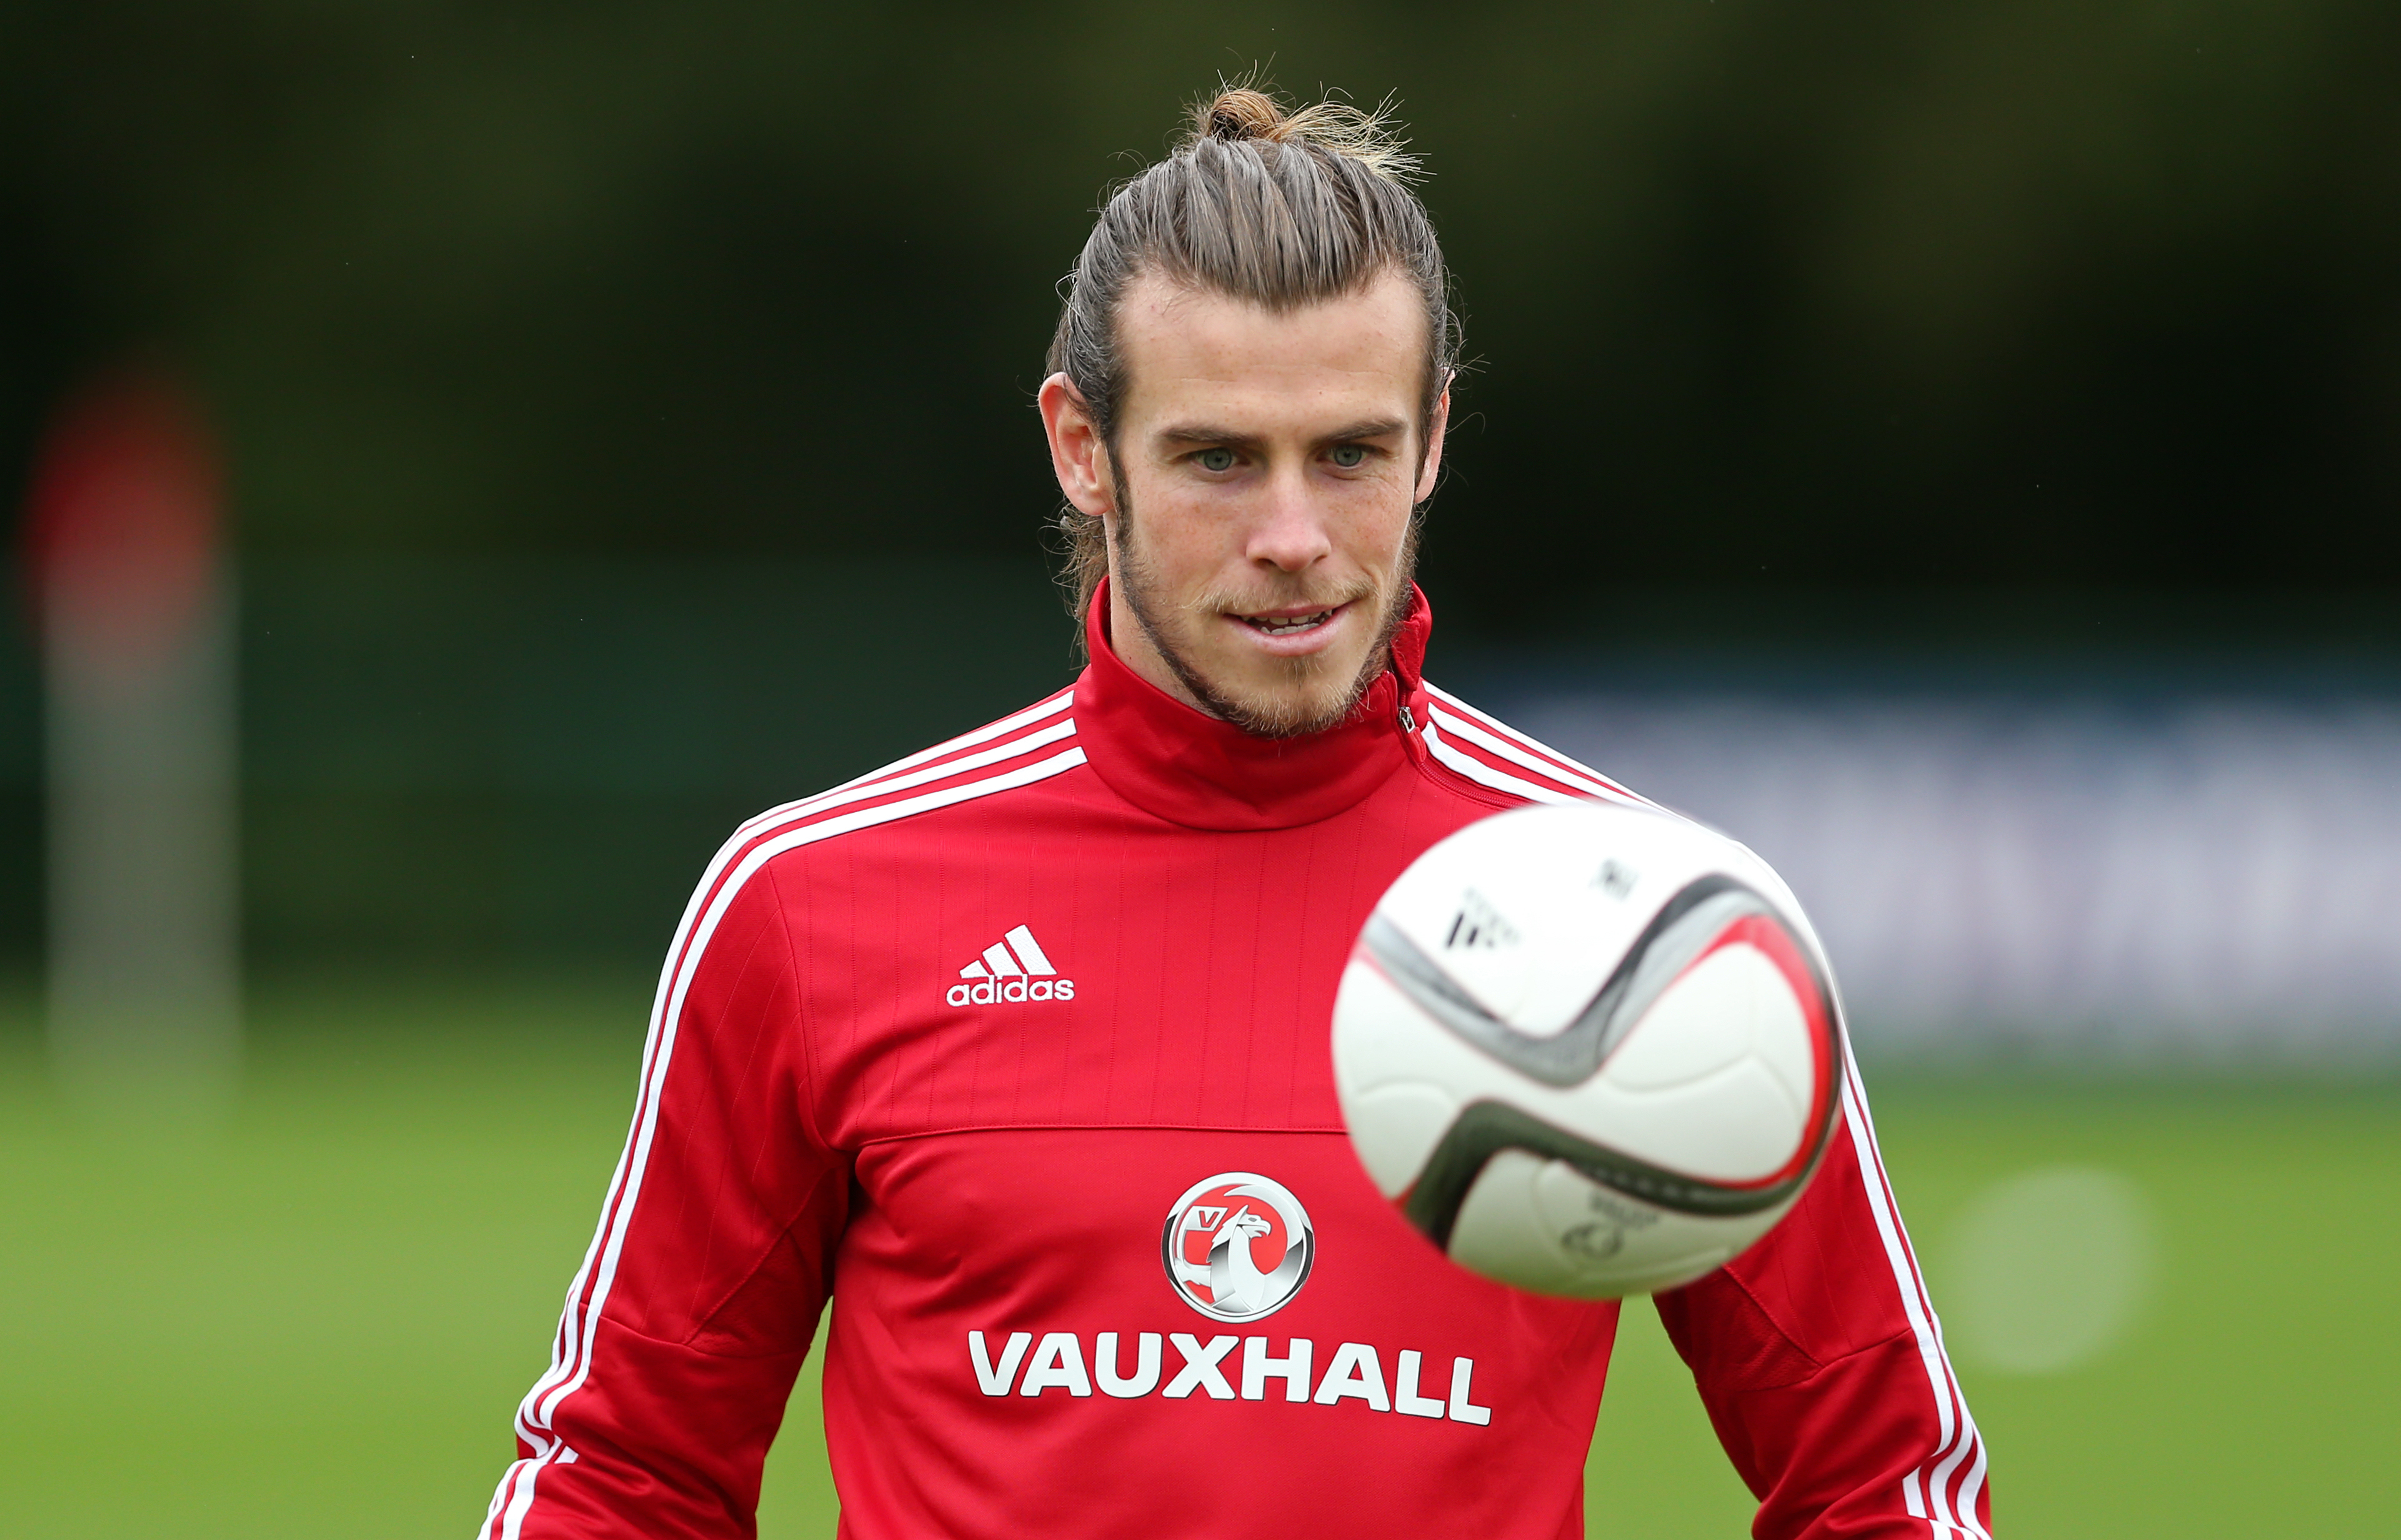 Bale S Brilliance Has Wales On Verge Of Breakthrough The